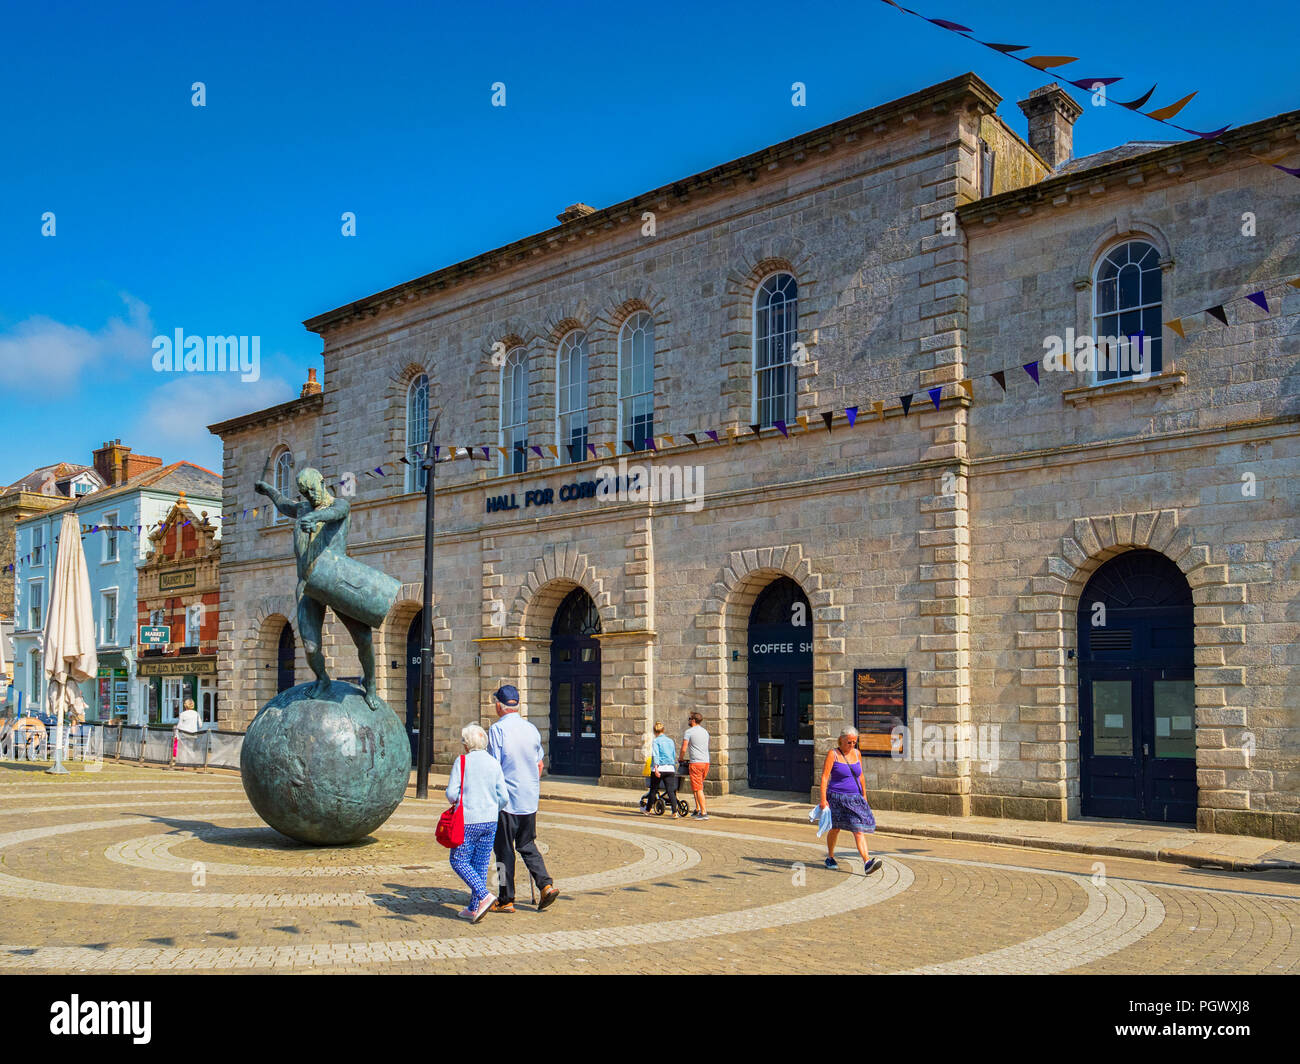 12 June 2018: Truro, Cornwall, UK - The Hall for Cornwall, a major venue in the city, and sculpture 'The Drummer' by Tim Shaw. - Stock Image